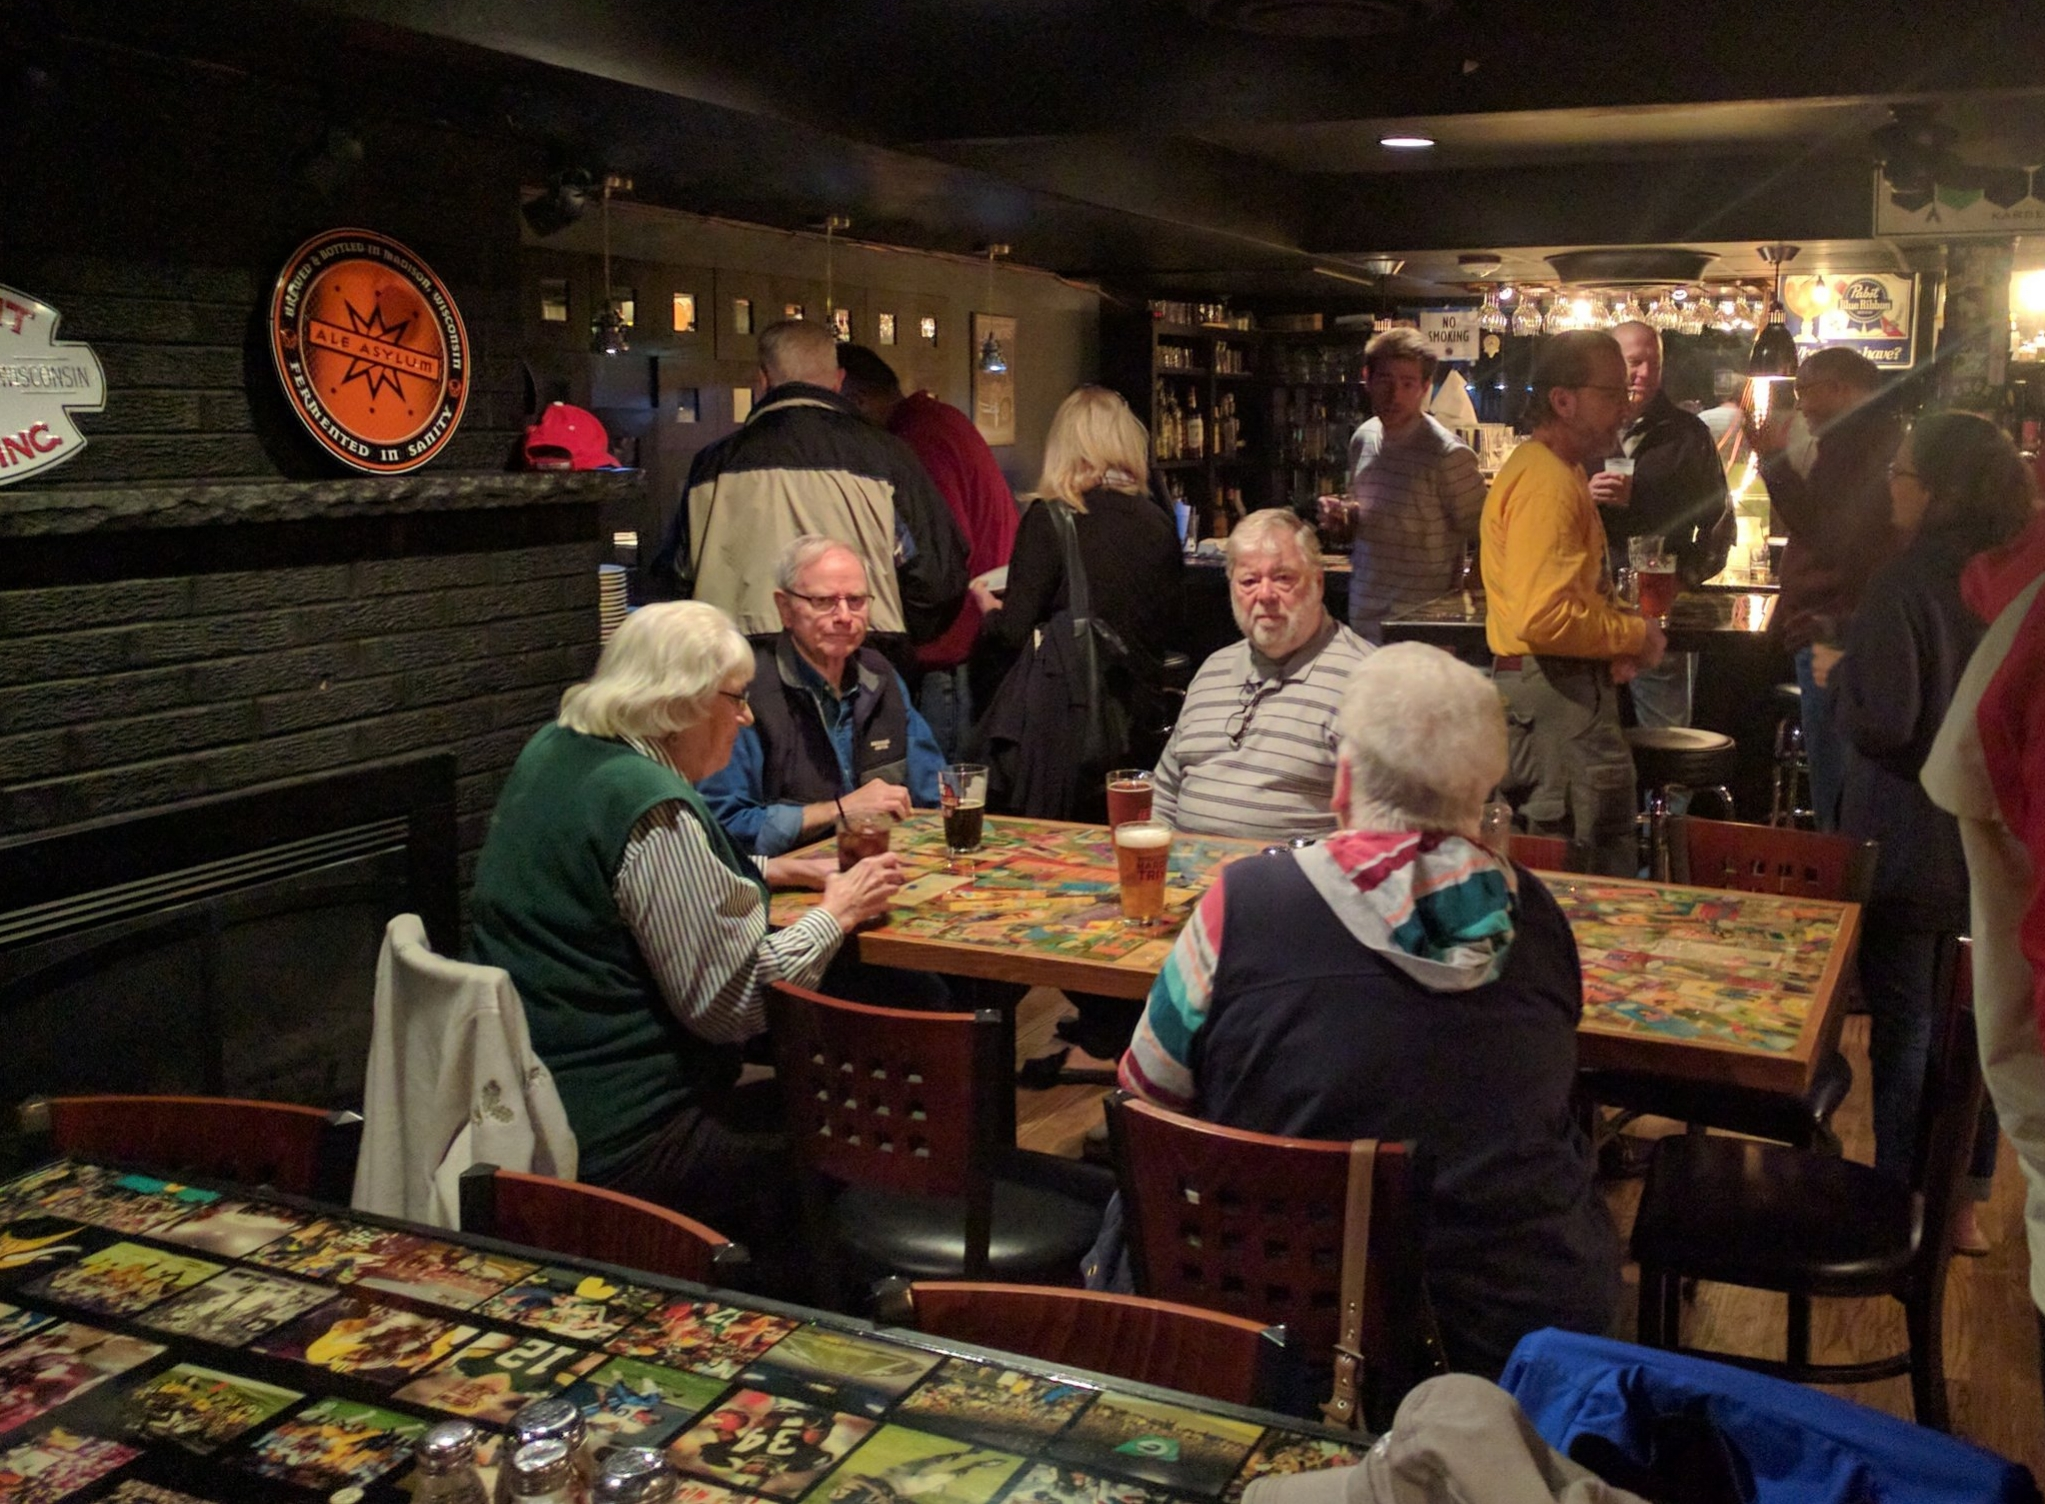 Thanks to  Glass Nickel Pizza  for hosting our annual volunteer appreciation gathering earlier this month. We honored two long-time volunteers, Charlotte Marshall who has been with Wheels for Winners for 24 years and Walt Brinkmann who has been with us for 18 years!